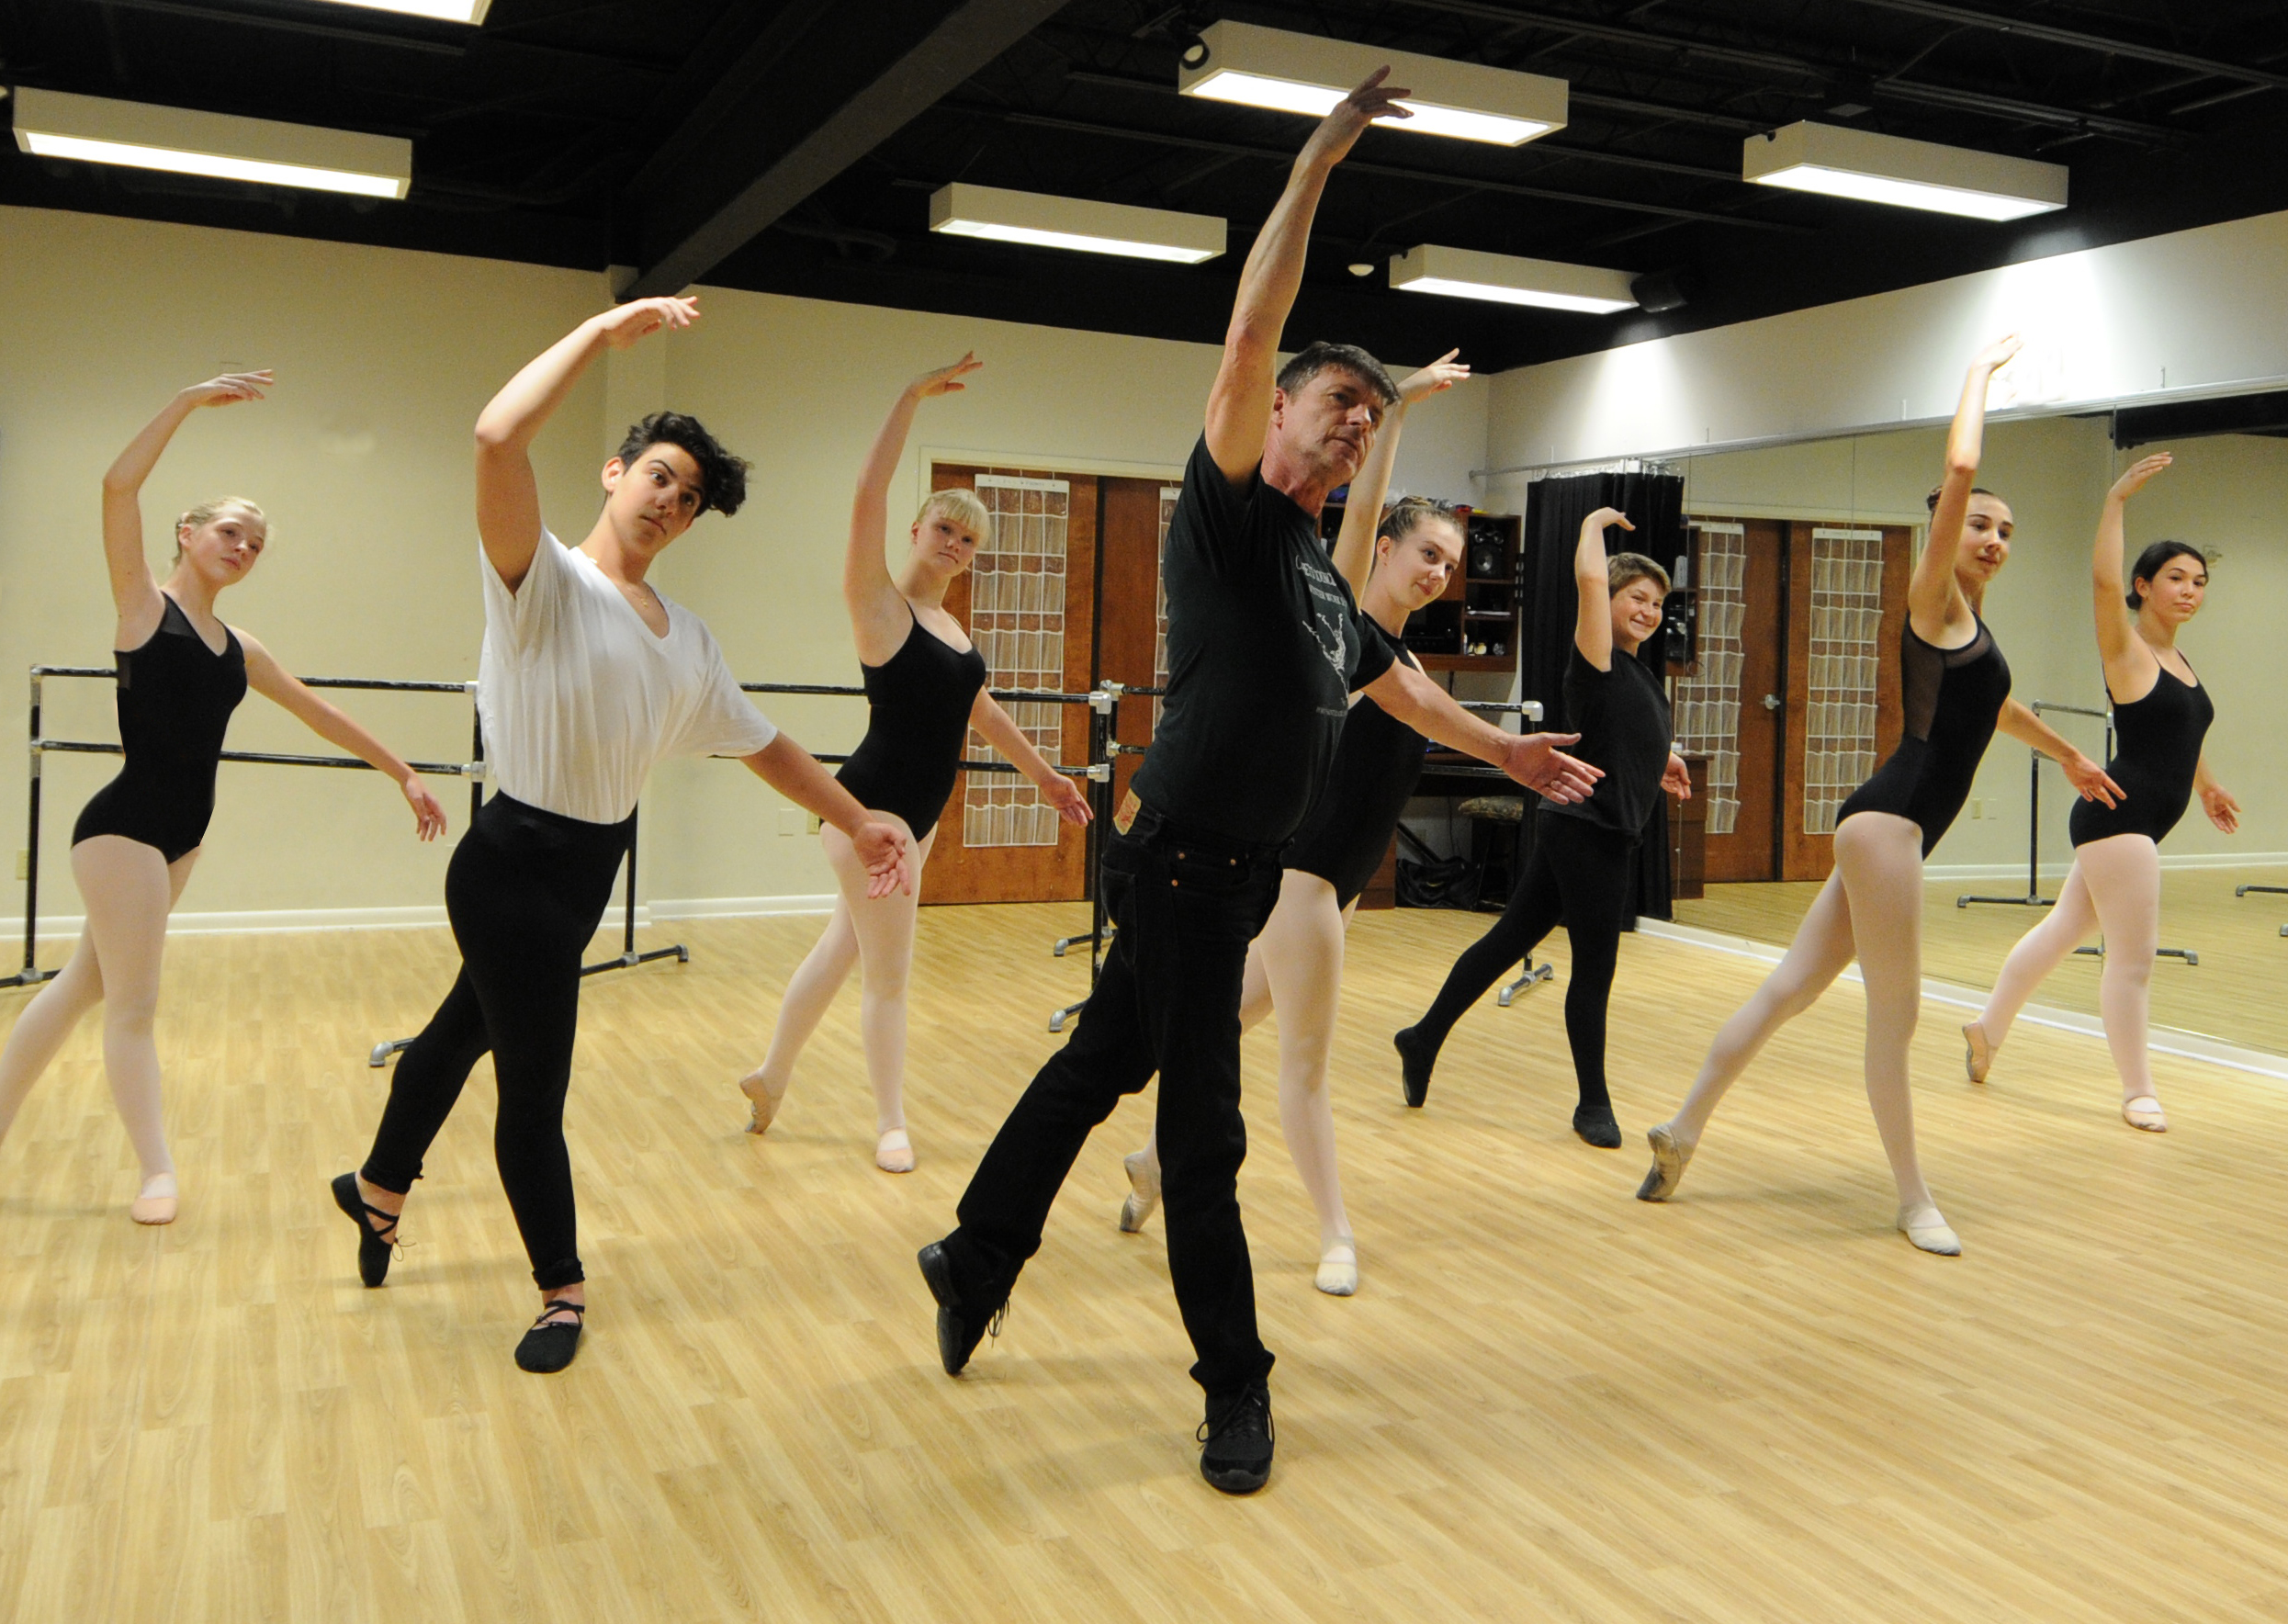 Spring classes at the Maltz Jupiter Theatre - photo by Alicia Donelan